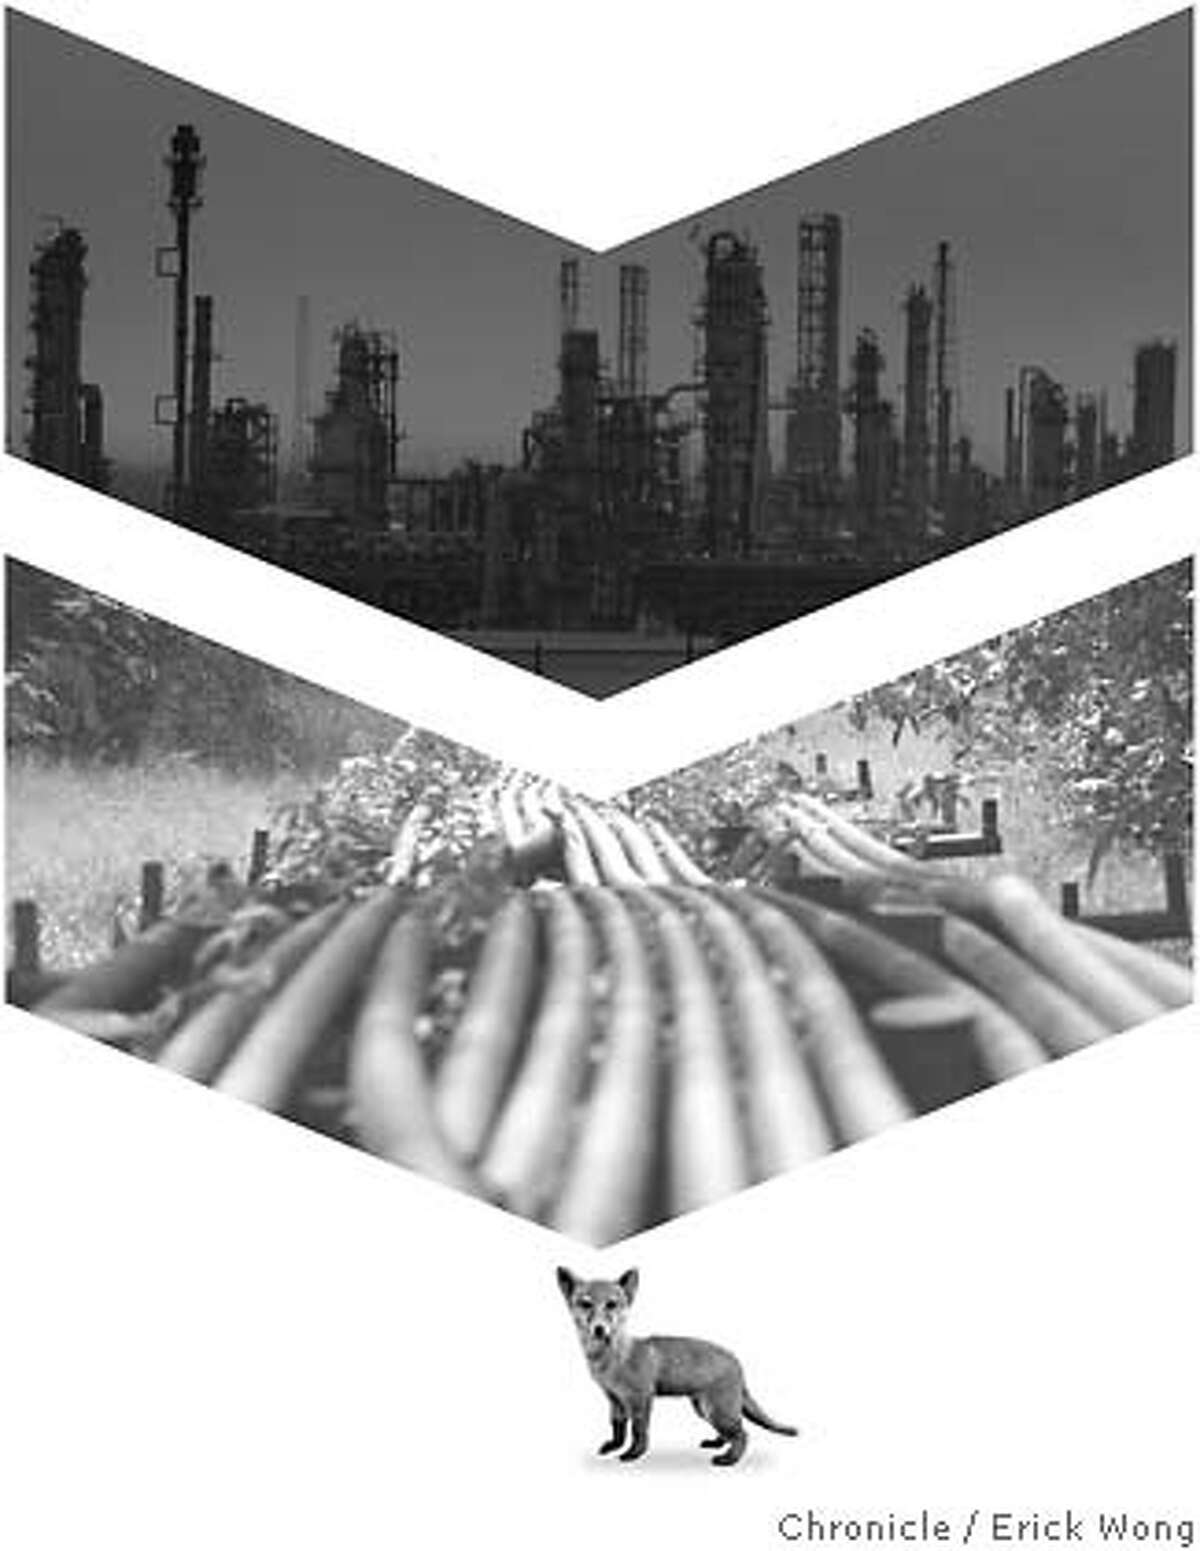 Photo illustration: Erick Wong / SFC TOP IMAGE: The sun sets over an oil refinery in Port Arthur, Texas, in this May 17, 2007 file photo. Refineries gobble lots of power in Texas, the leading state in emitting greenhouse gas. (AP Photo/LM Otero) MIDDLE IMAGE: Local youths walk on oil pipeline in Utorogun, Nigeria, Sunday, March 5, 2006. Armed militants in Nigeria vowed Sunday to cut daily oil exports from this West African nation's troubled delta region by another 1 million barrels by the end of March, as OPEC nations prepared for a strategy meeting in Vienna this week. A wave of militant assaults on pipelines and oil facilities has already cut production by 455,000 barrels per day in Nigeria, which normally exports 2.5 million barrels of crude daily. (AP Photo/George Osodi) BOTTOM IMAGE: Young fox (absolutvision.com)